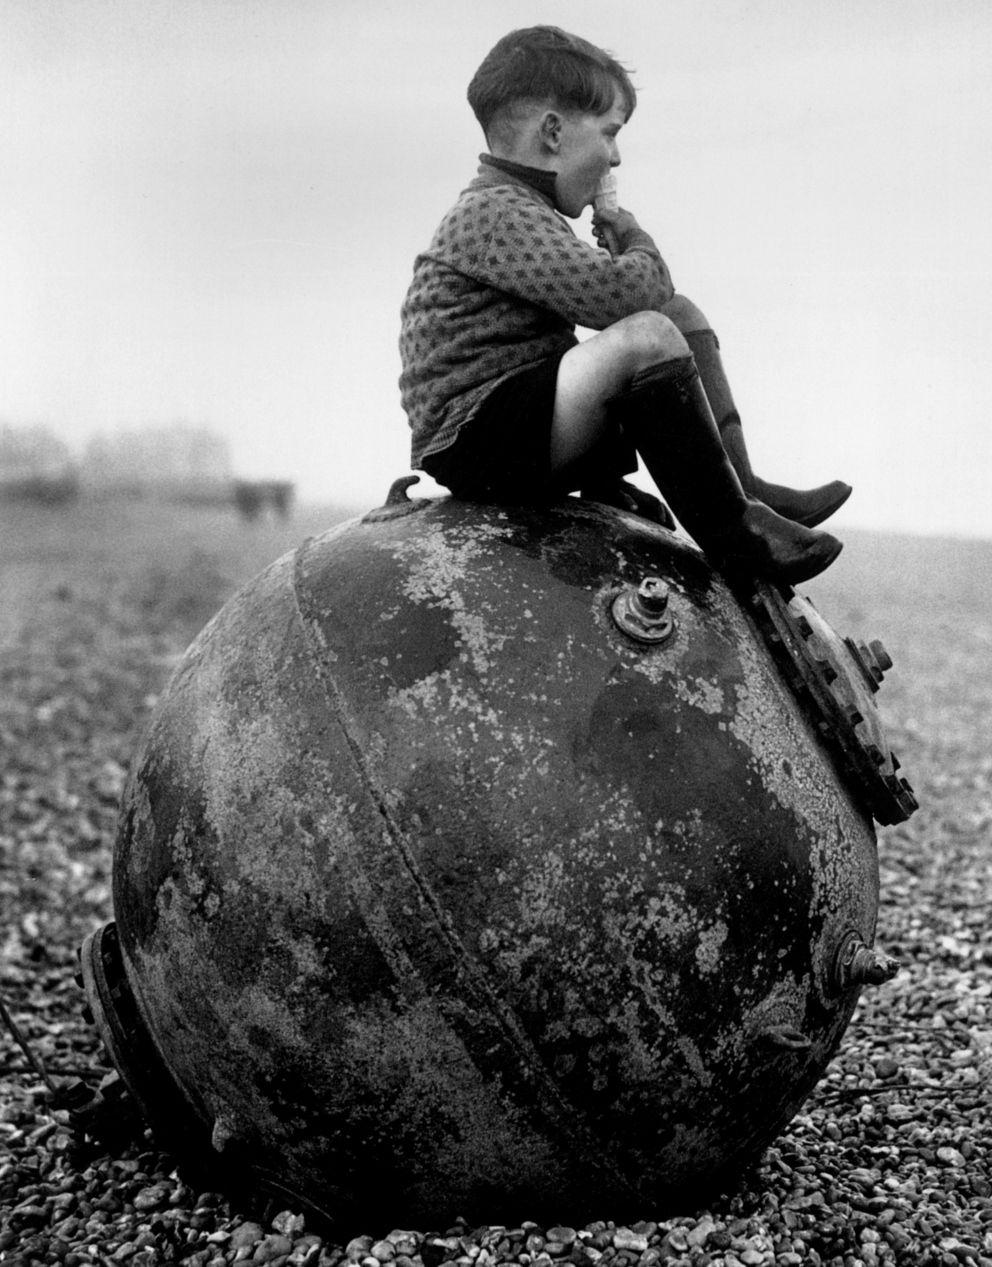 German WWII sea mines still work today Children from the past